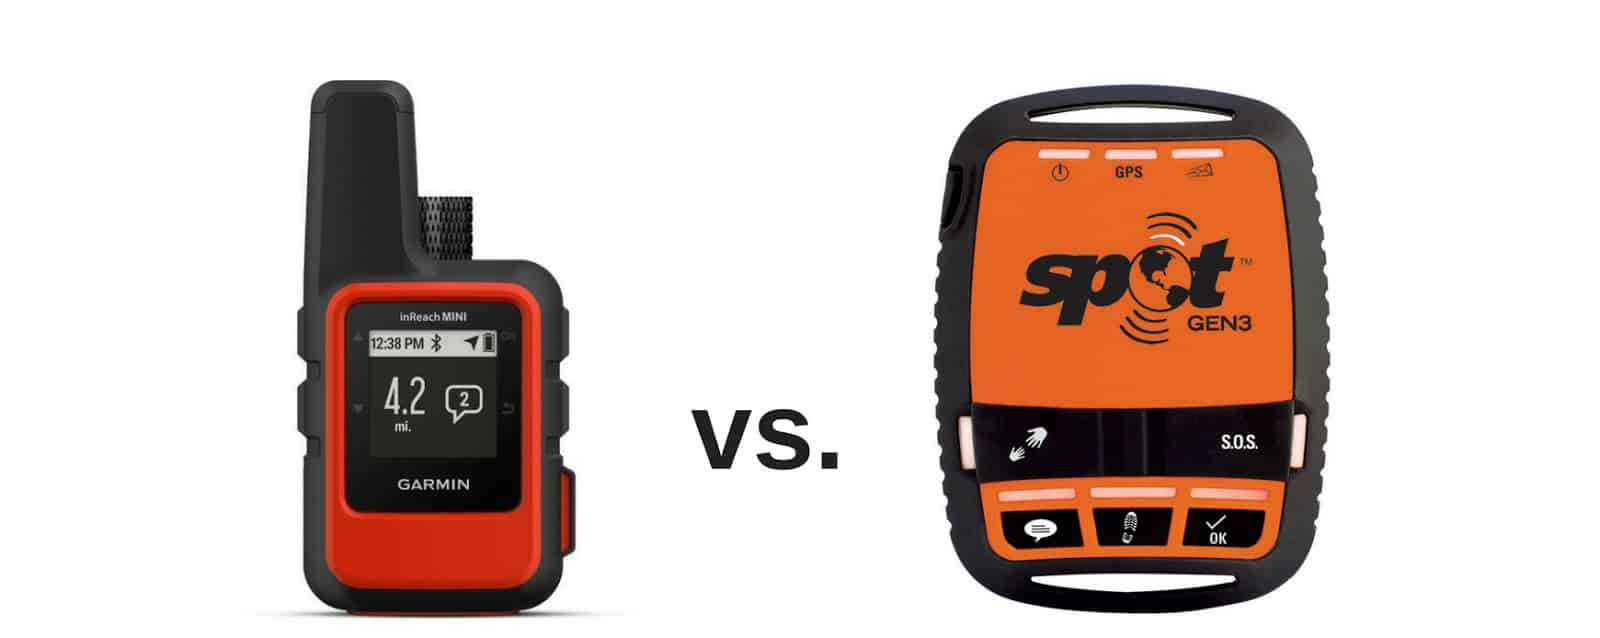 garmin inreach mini vs spot gen3 satellite messenger 2